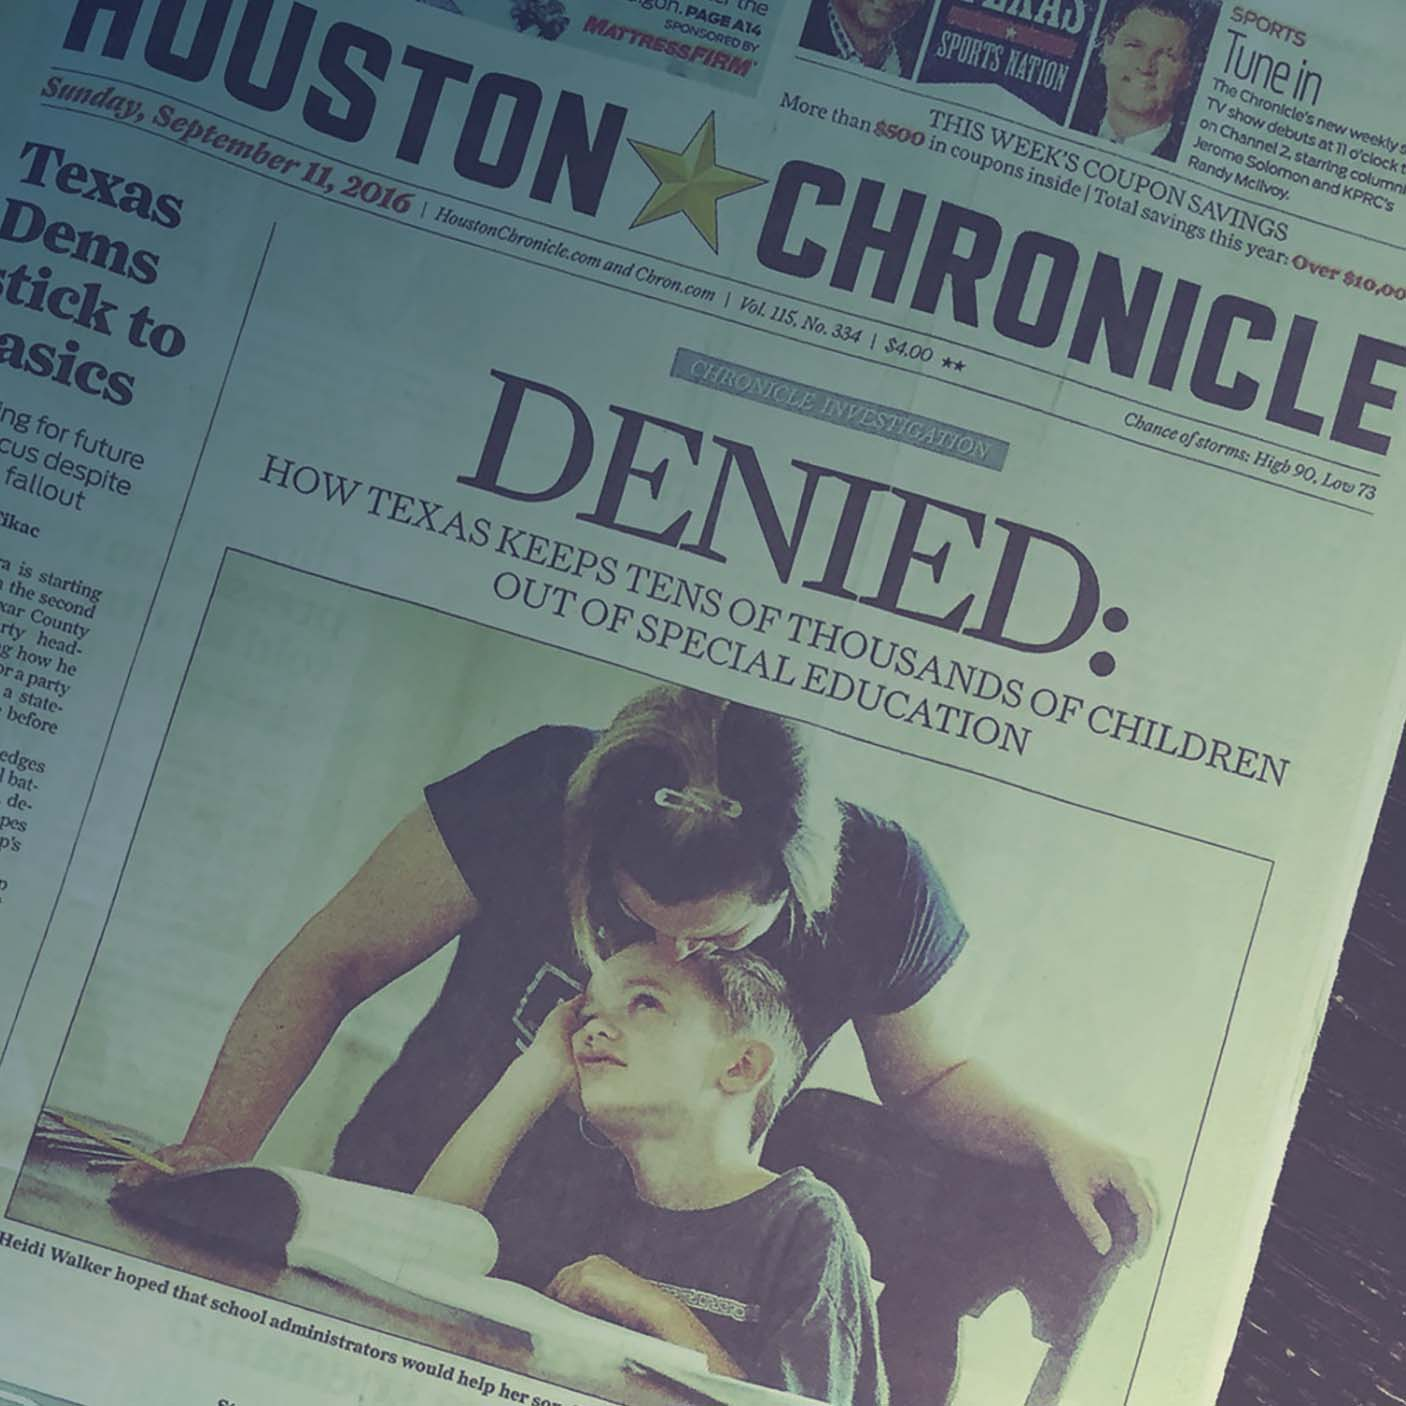 Houston Chronicle's September 11, 2016 front page